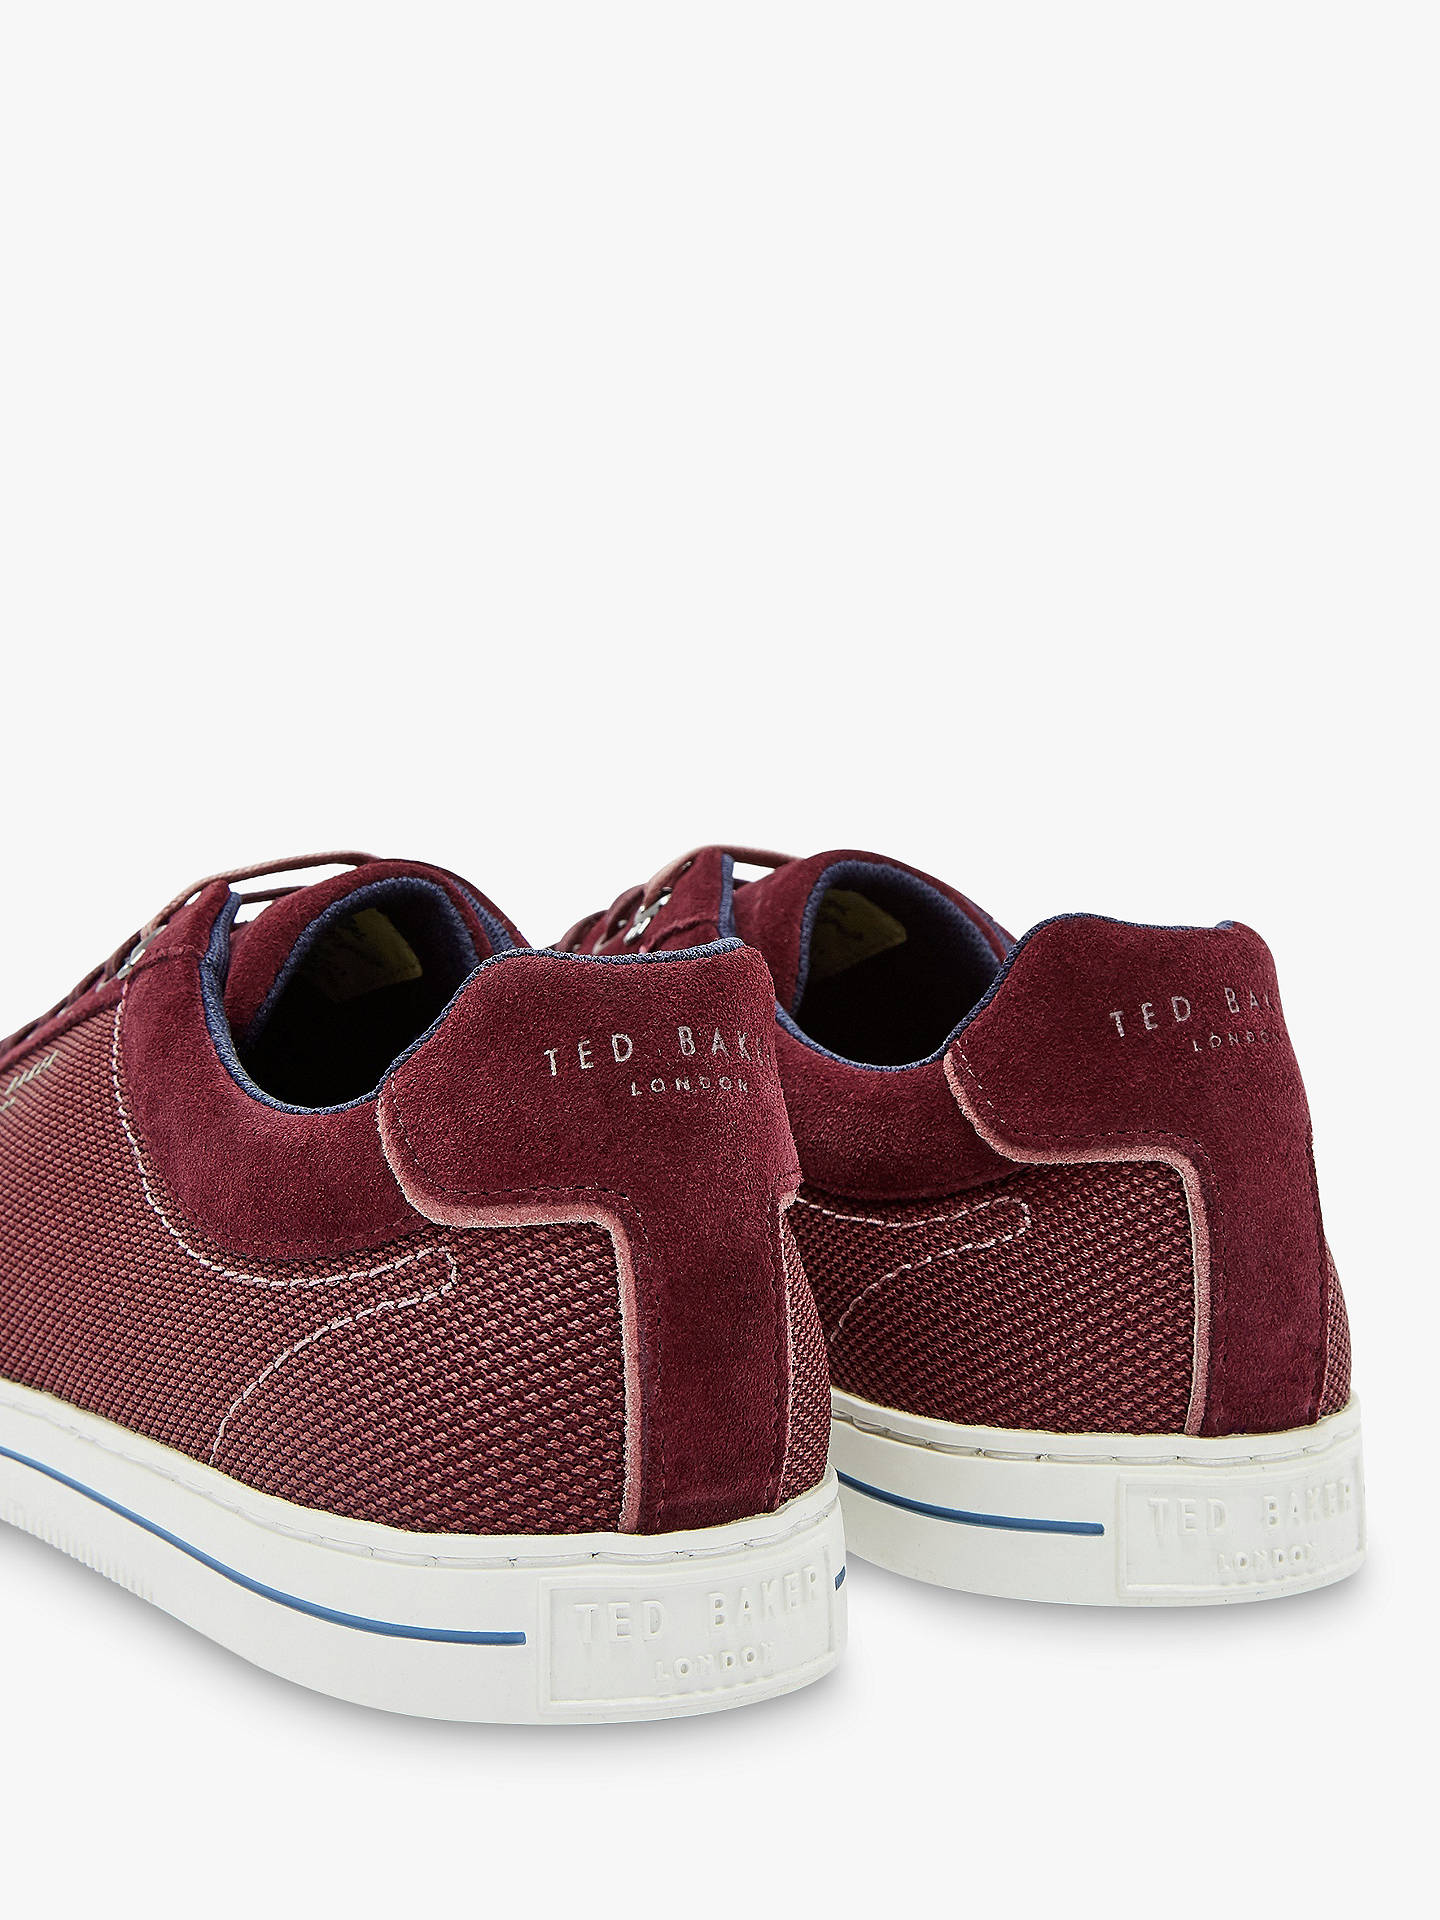 Buy Ted Baker Ashwyns Suede Trainers, Dark Red, 9 Online at johnlewis.com